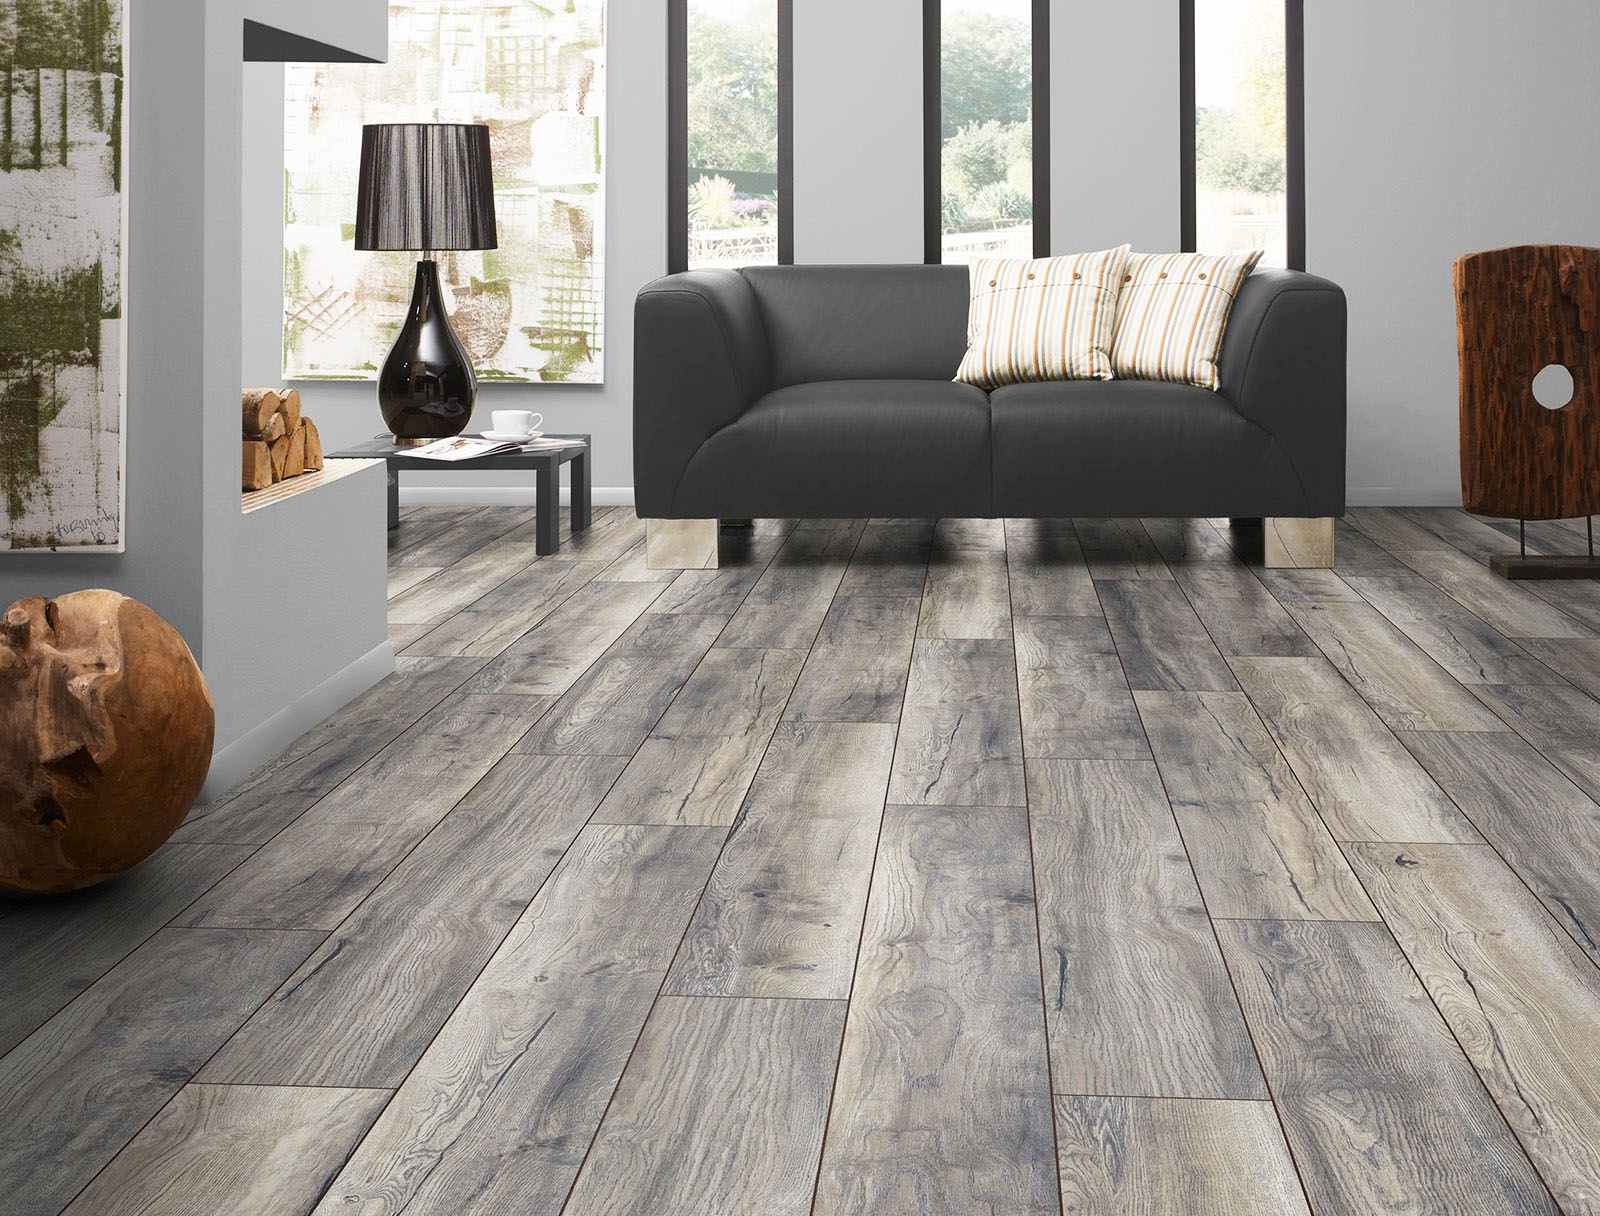 Laminated Wooden Flooring Pros And Cons Vacuums Guide